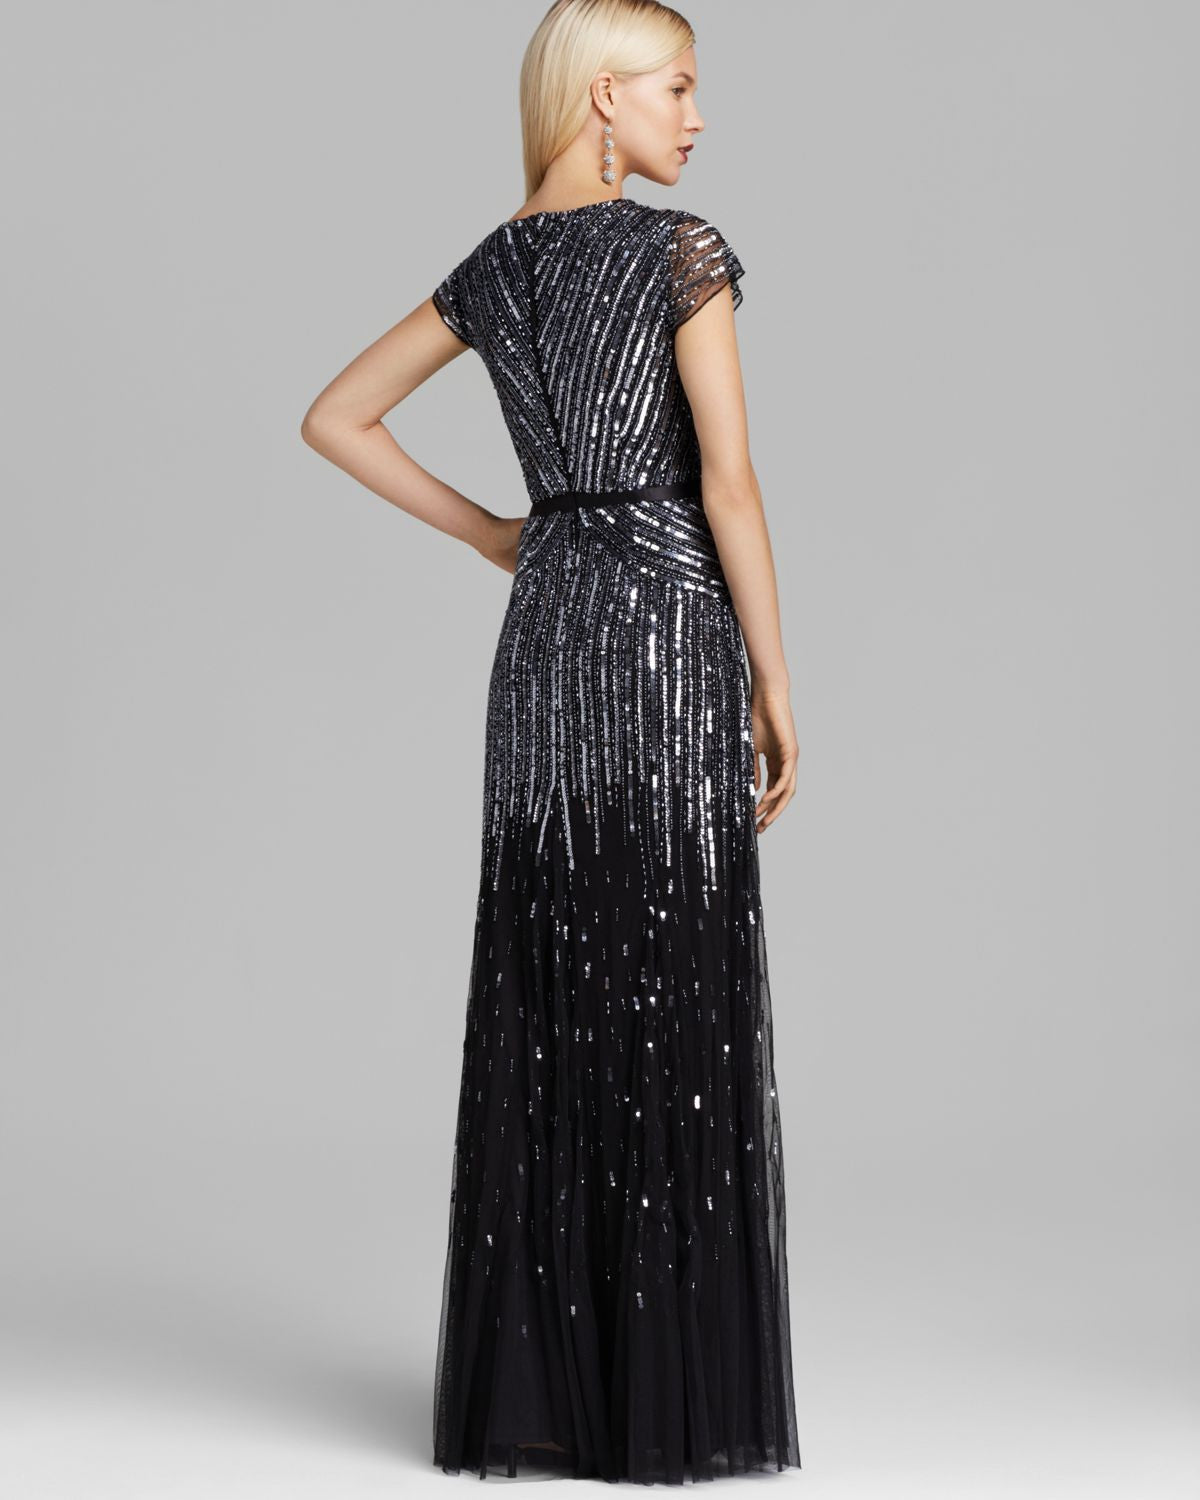 Adrianna Papell Beaded V-neck Gown - Gunmetal